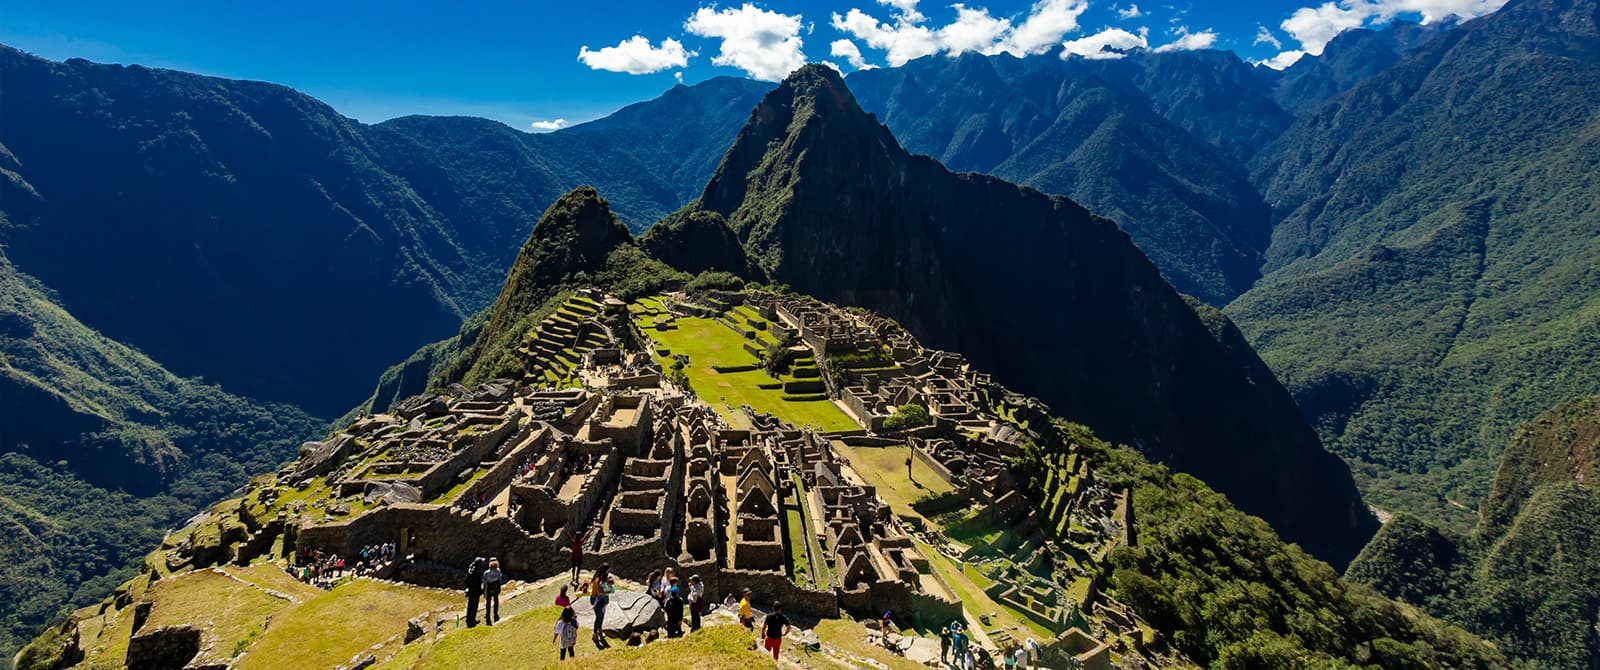 machu picchu arqueolical complex tour package